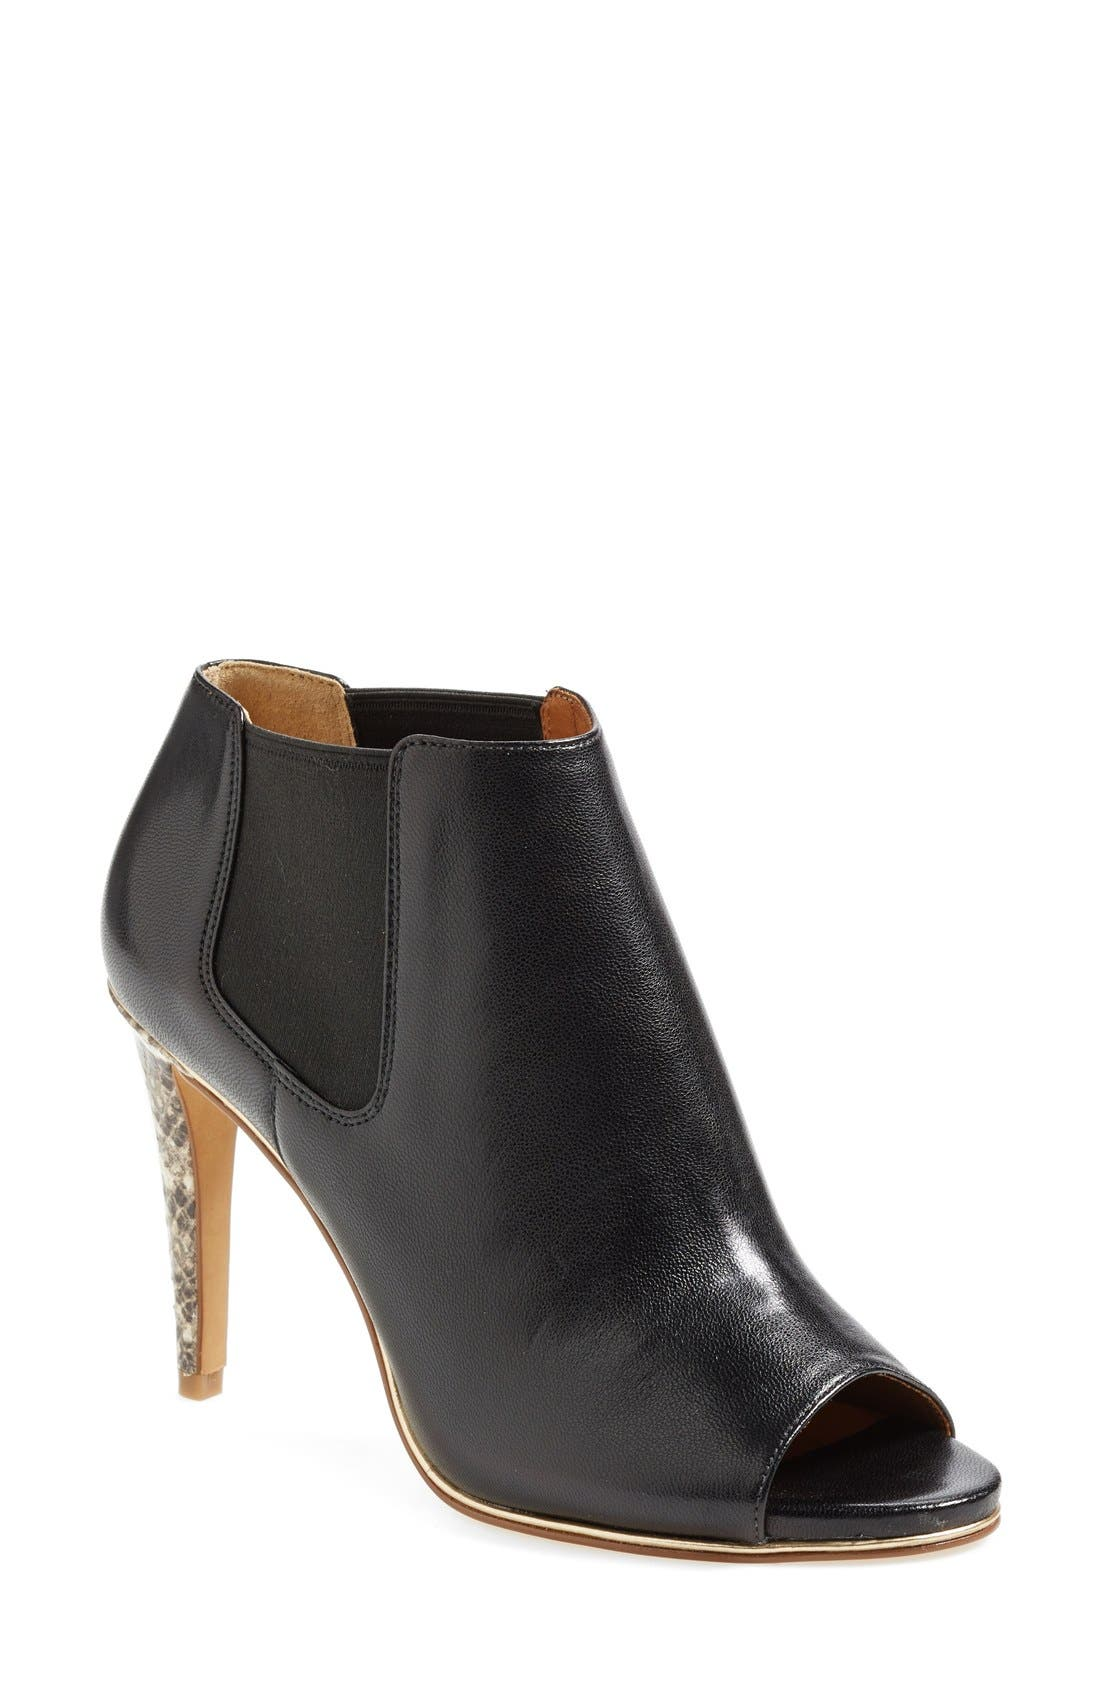 'Adrianna' Leather Peeptoe Bootie,                             Main thumbnail 1, color,                             015